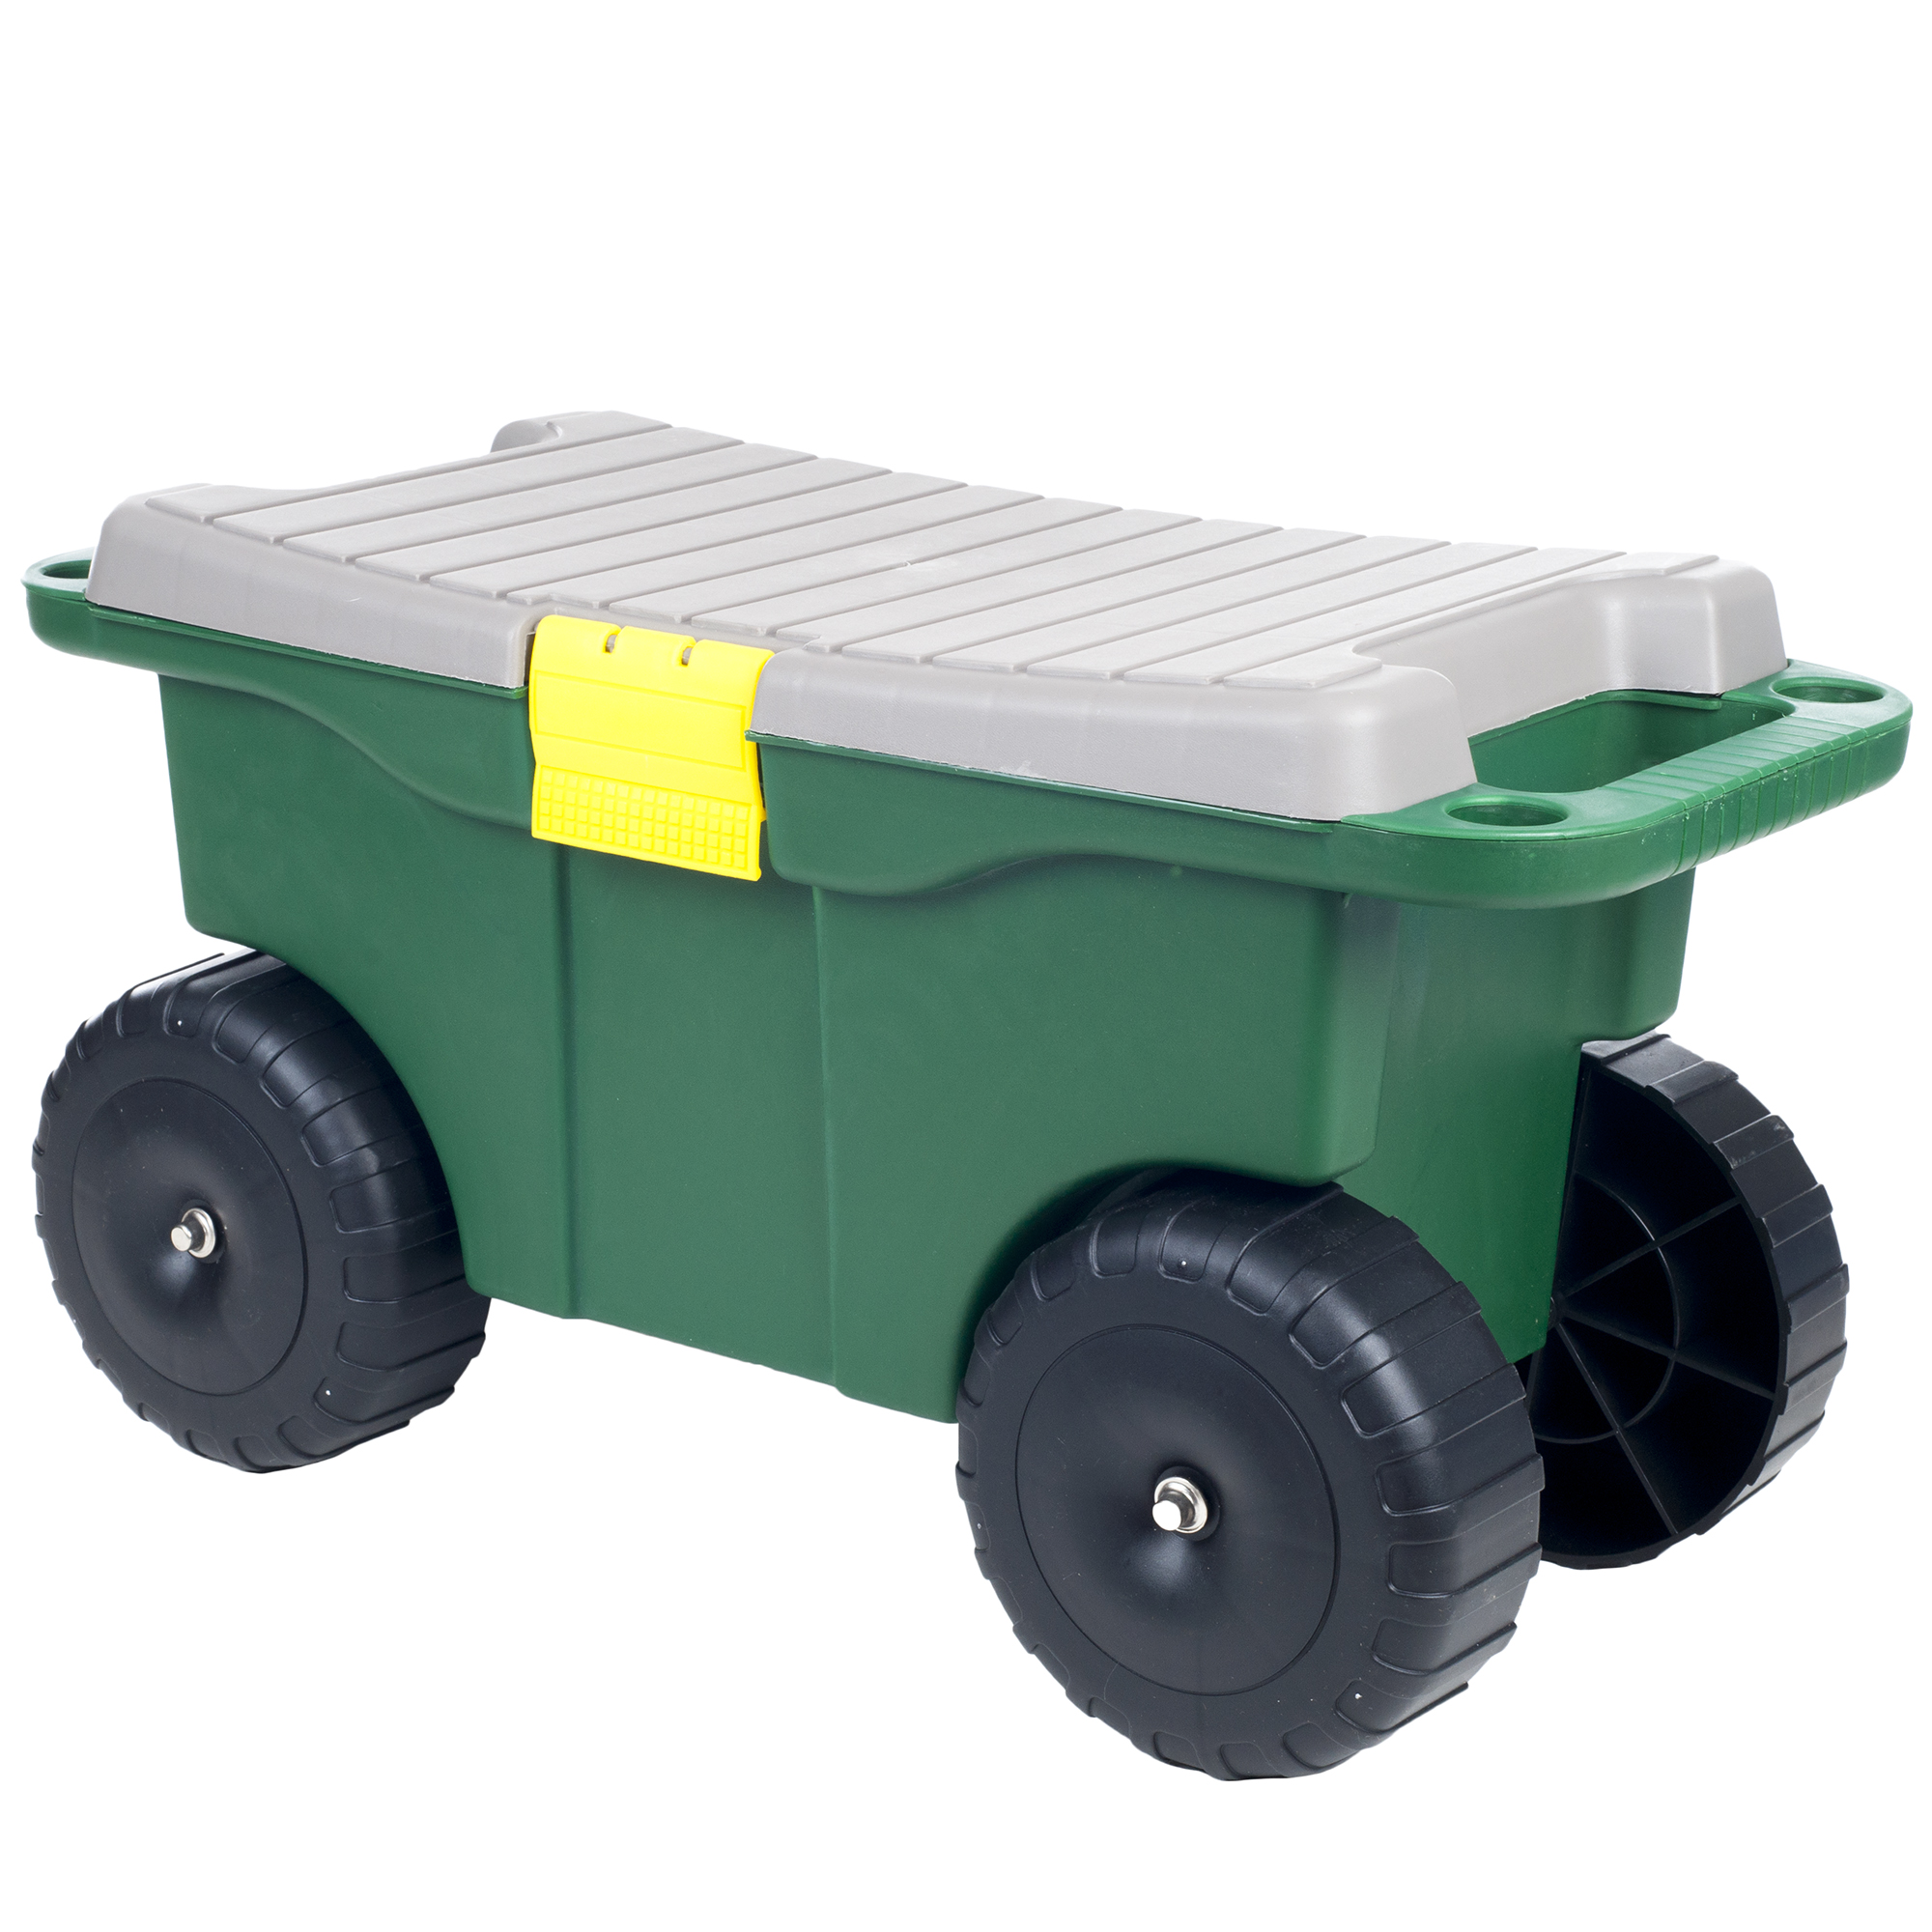 "Image of 20"" Plastic Garden Storage Cart; Scooter by Pure Garden"